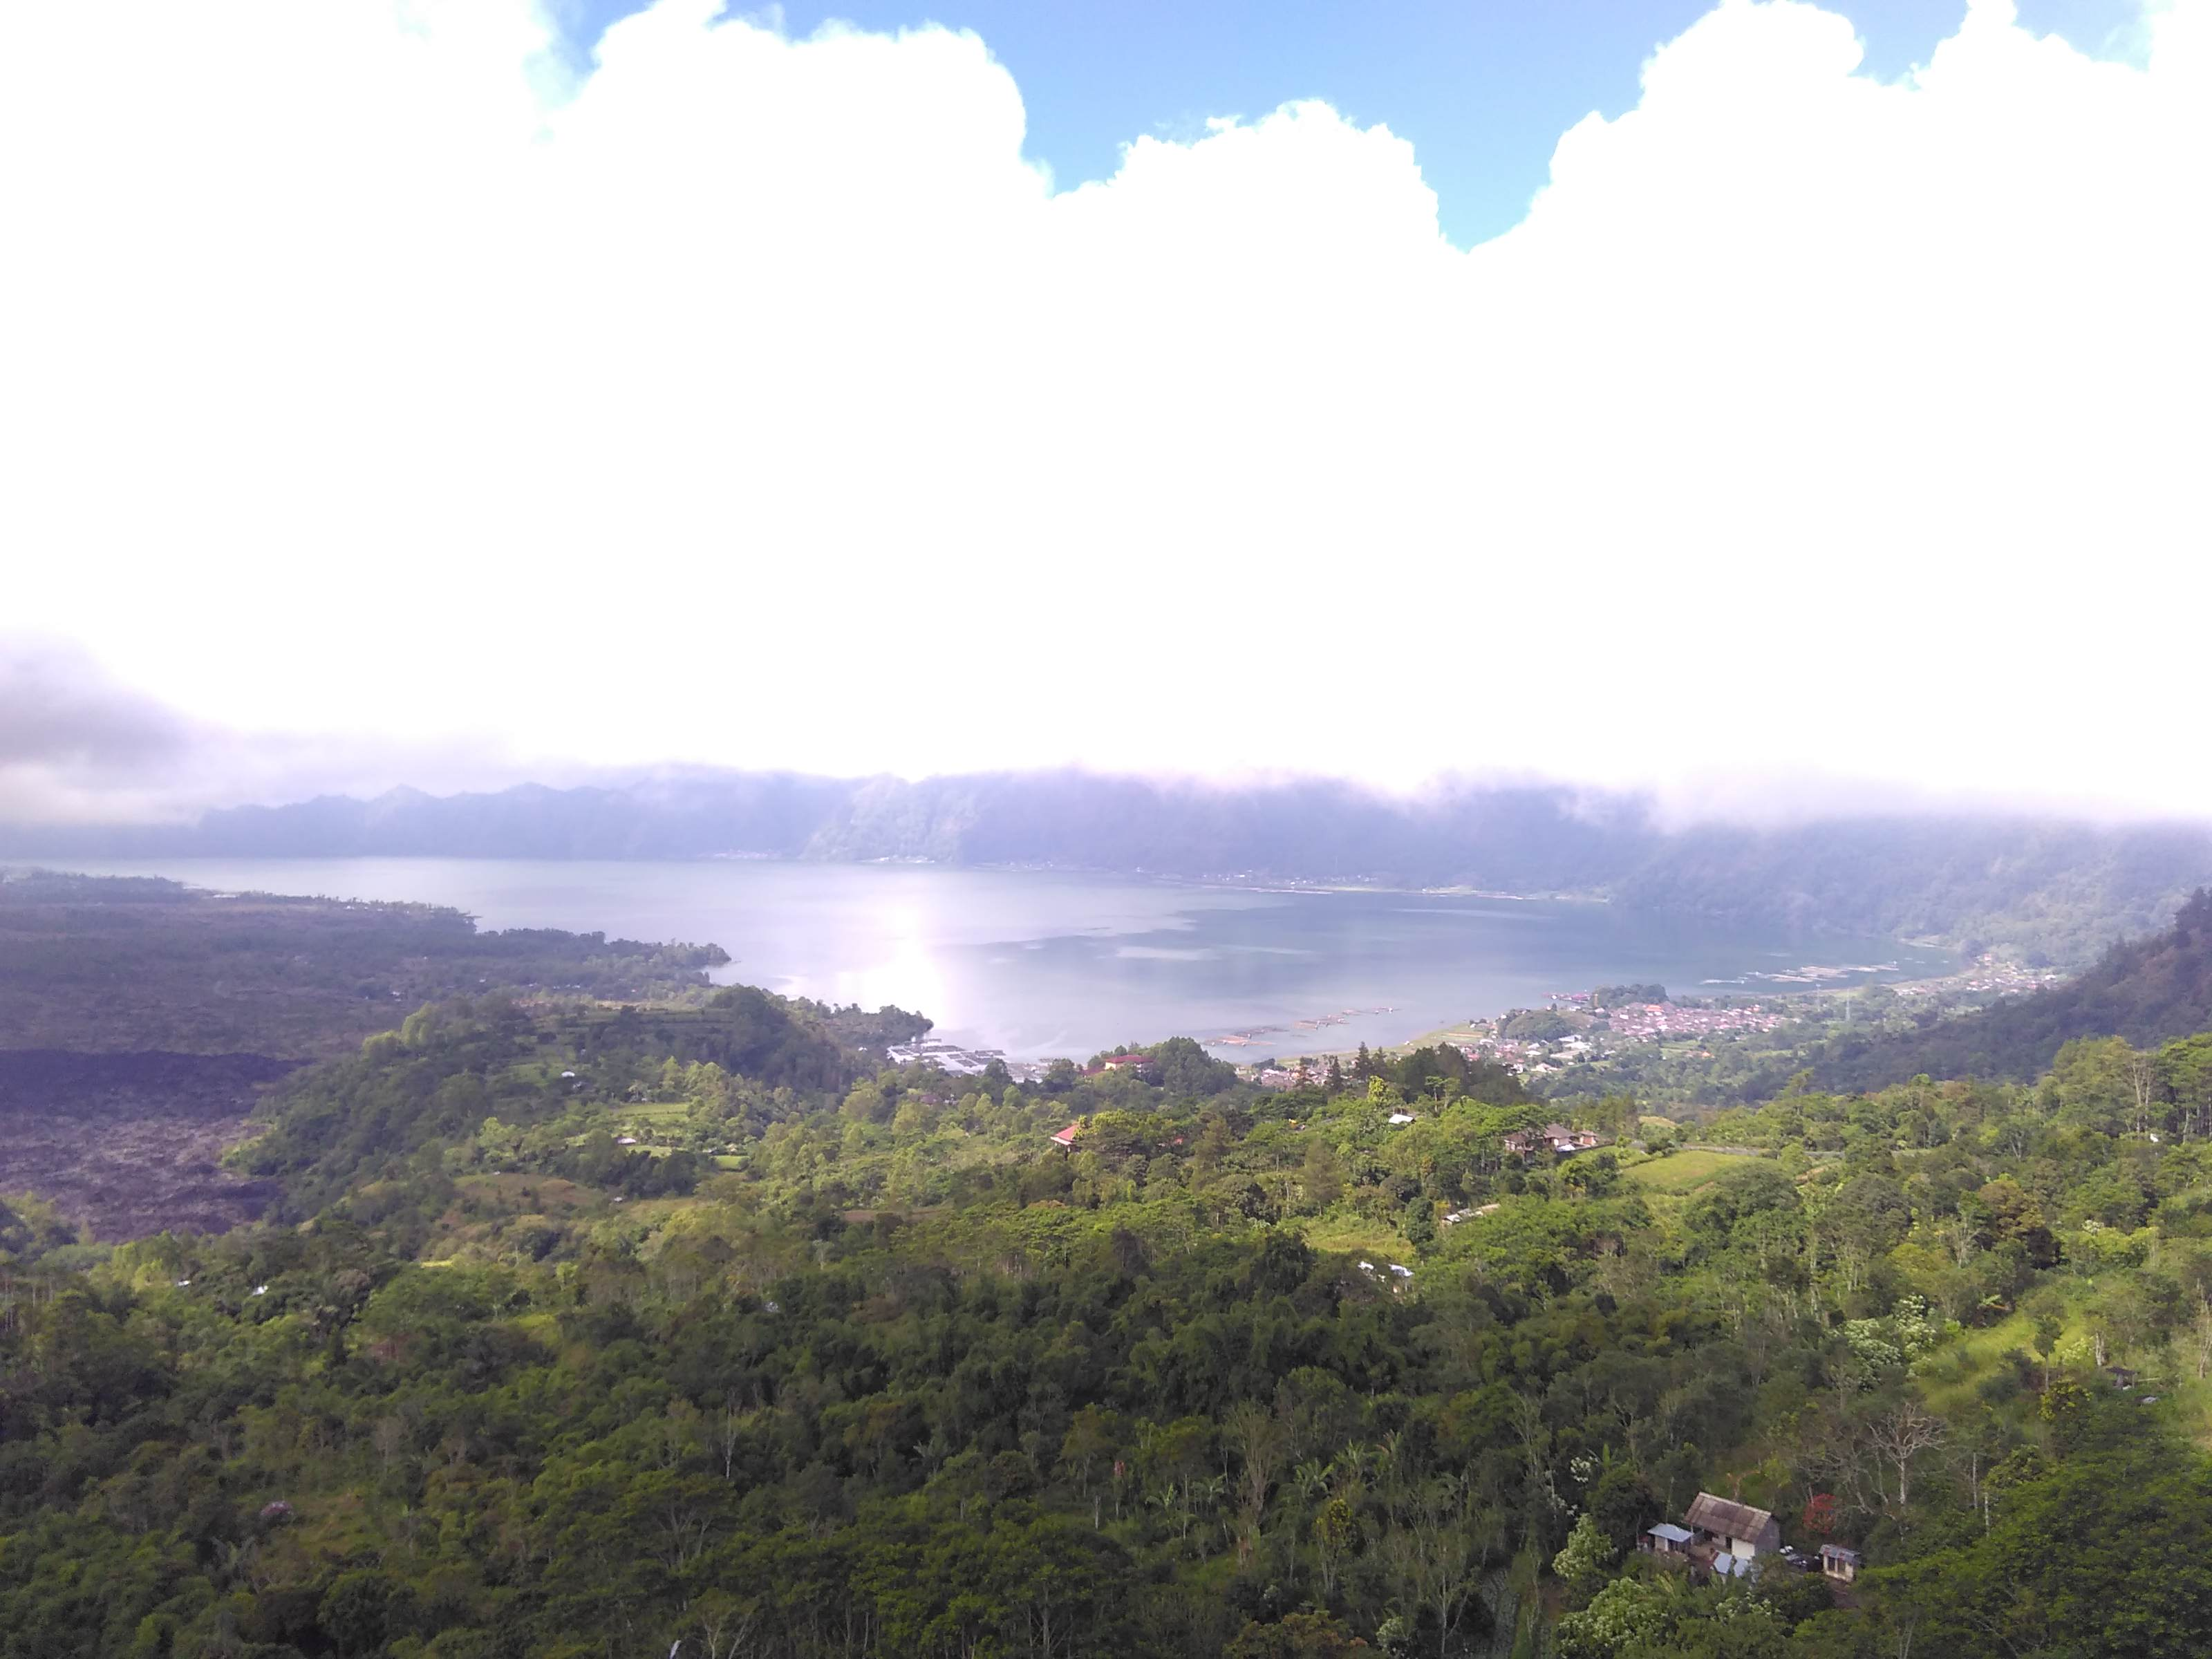 View of Lake Batur from Kintamani